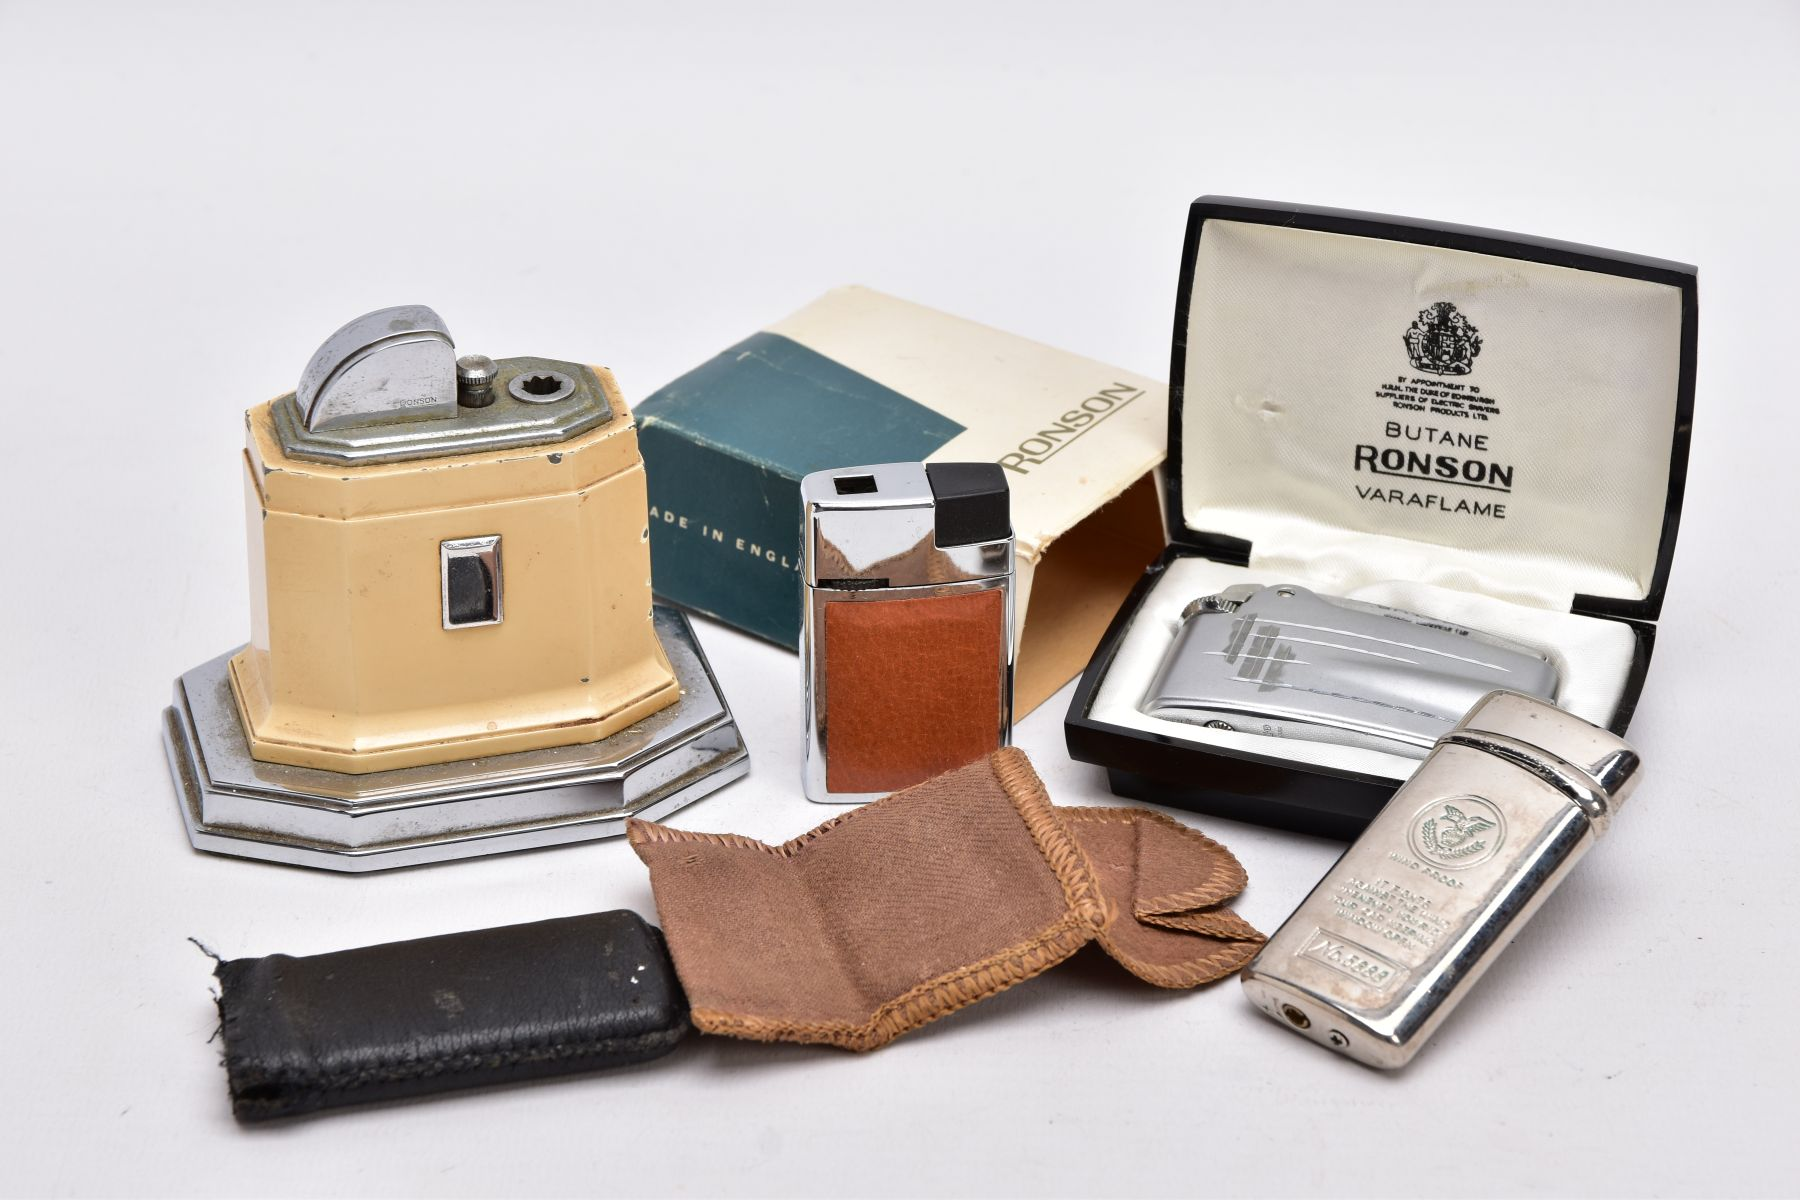 A 'RONSON' TOUCH TIP TABLE LIGHTER, A BOXED 'RONSON' LIGHTER AND TWO OTHERS, an art deco style cream